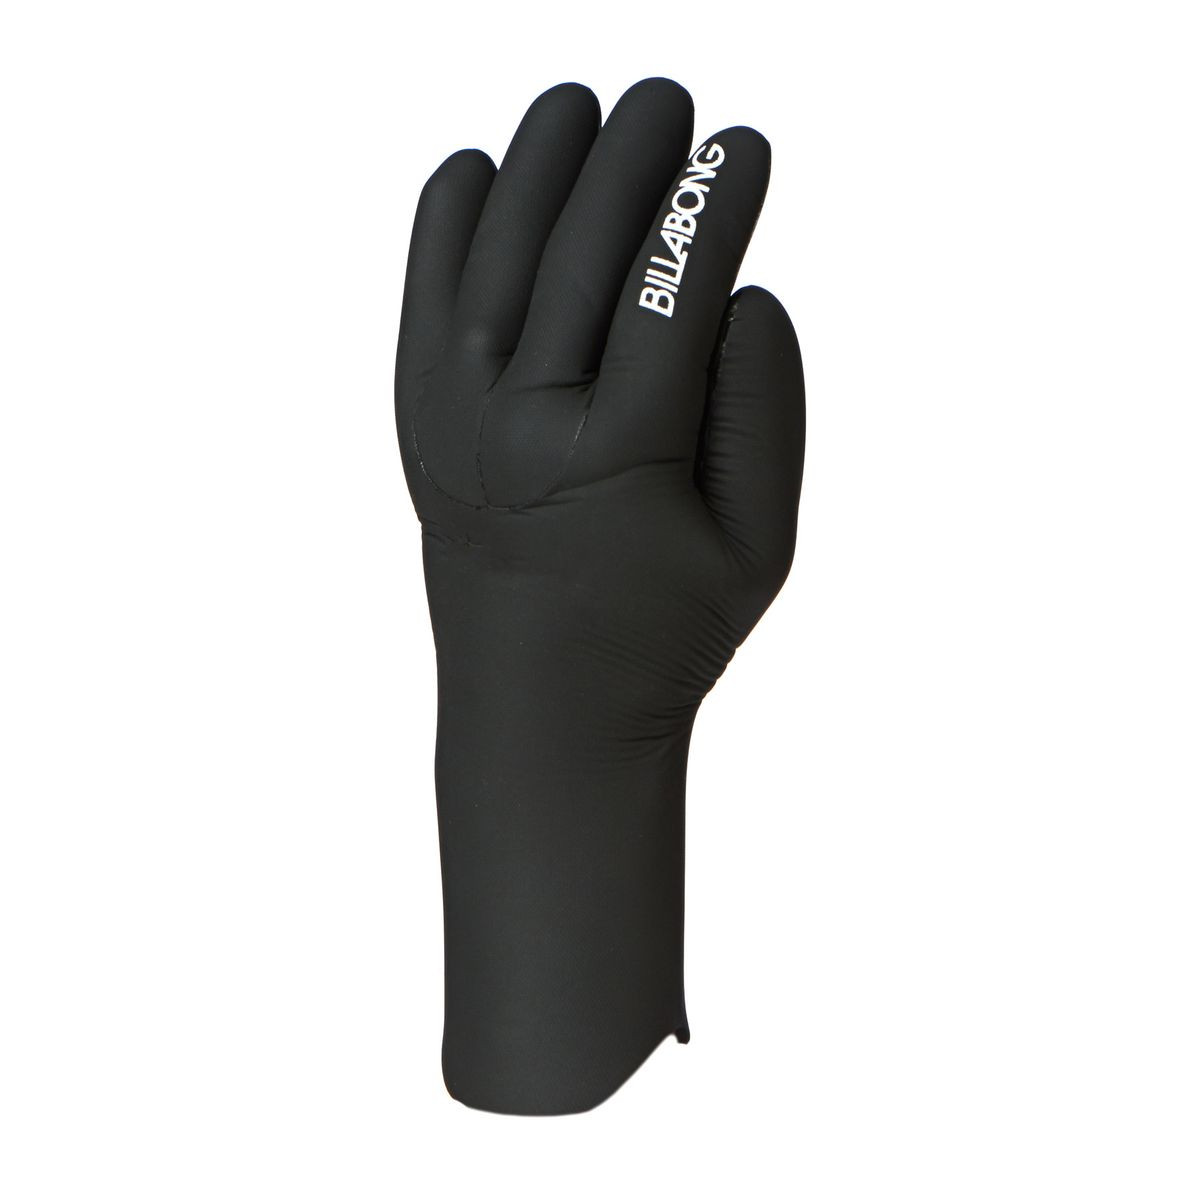 Billabong Foil 5 Finger Wetsuit Gloves - 4mm